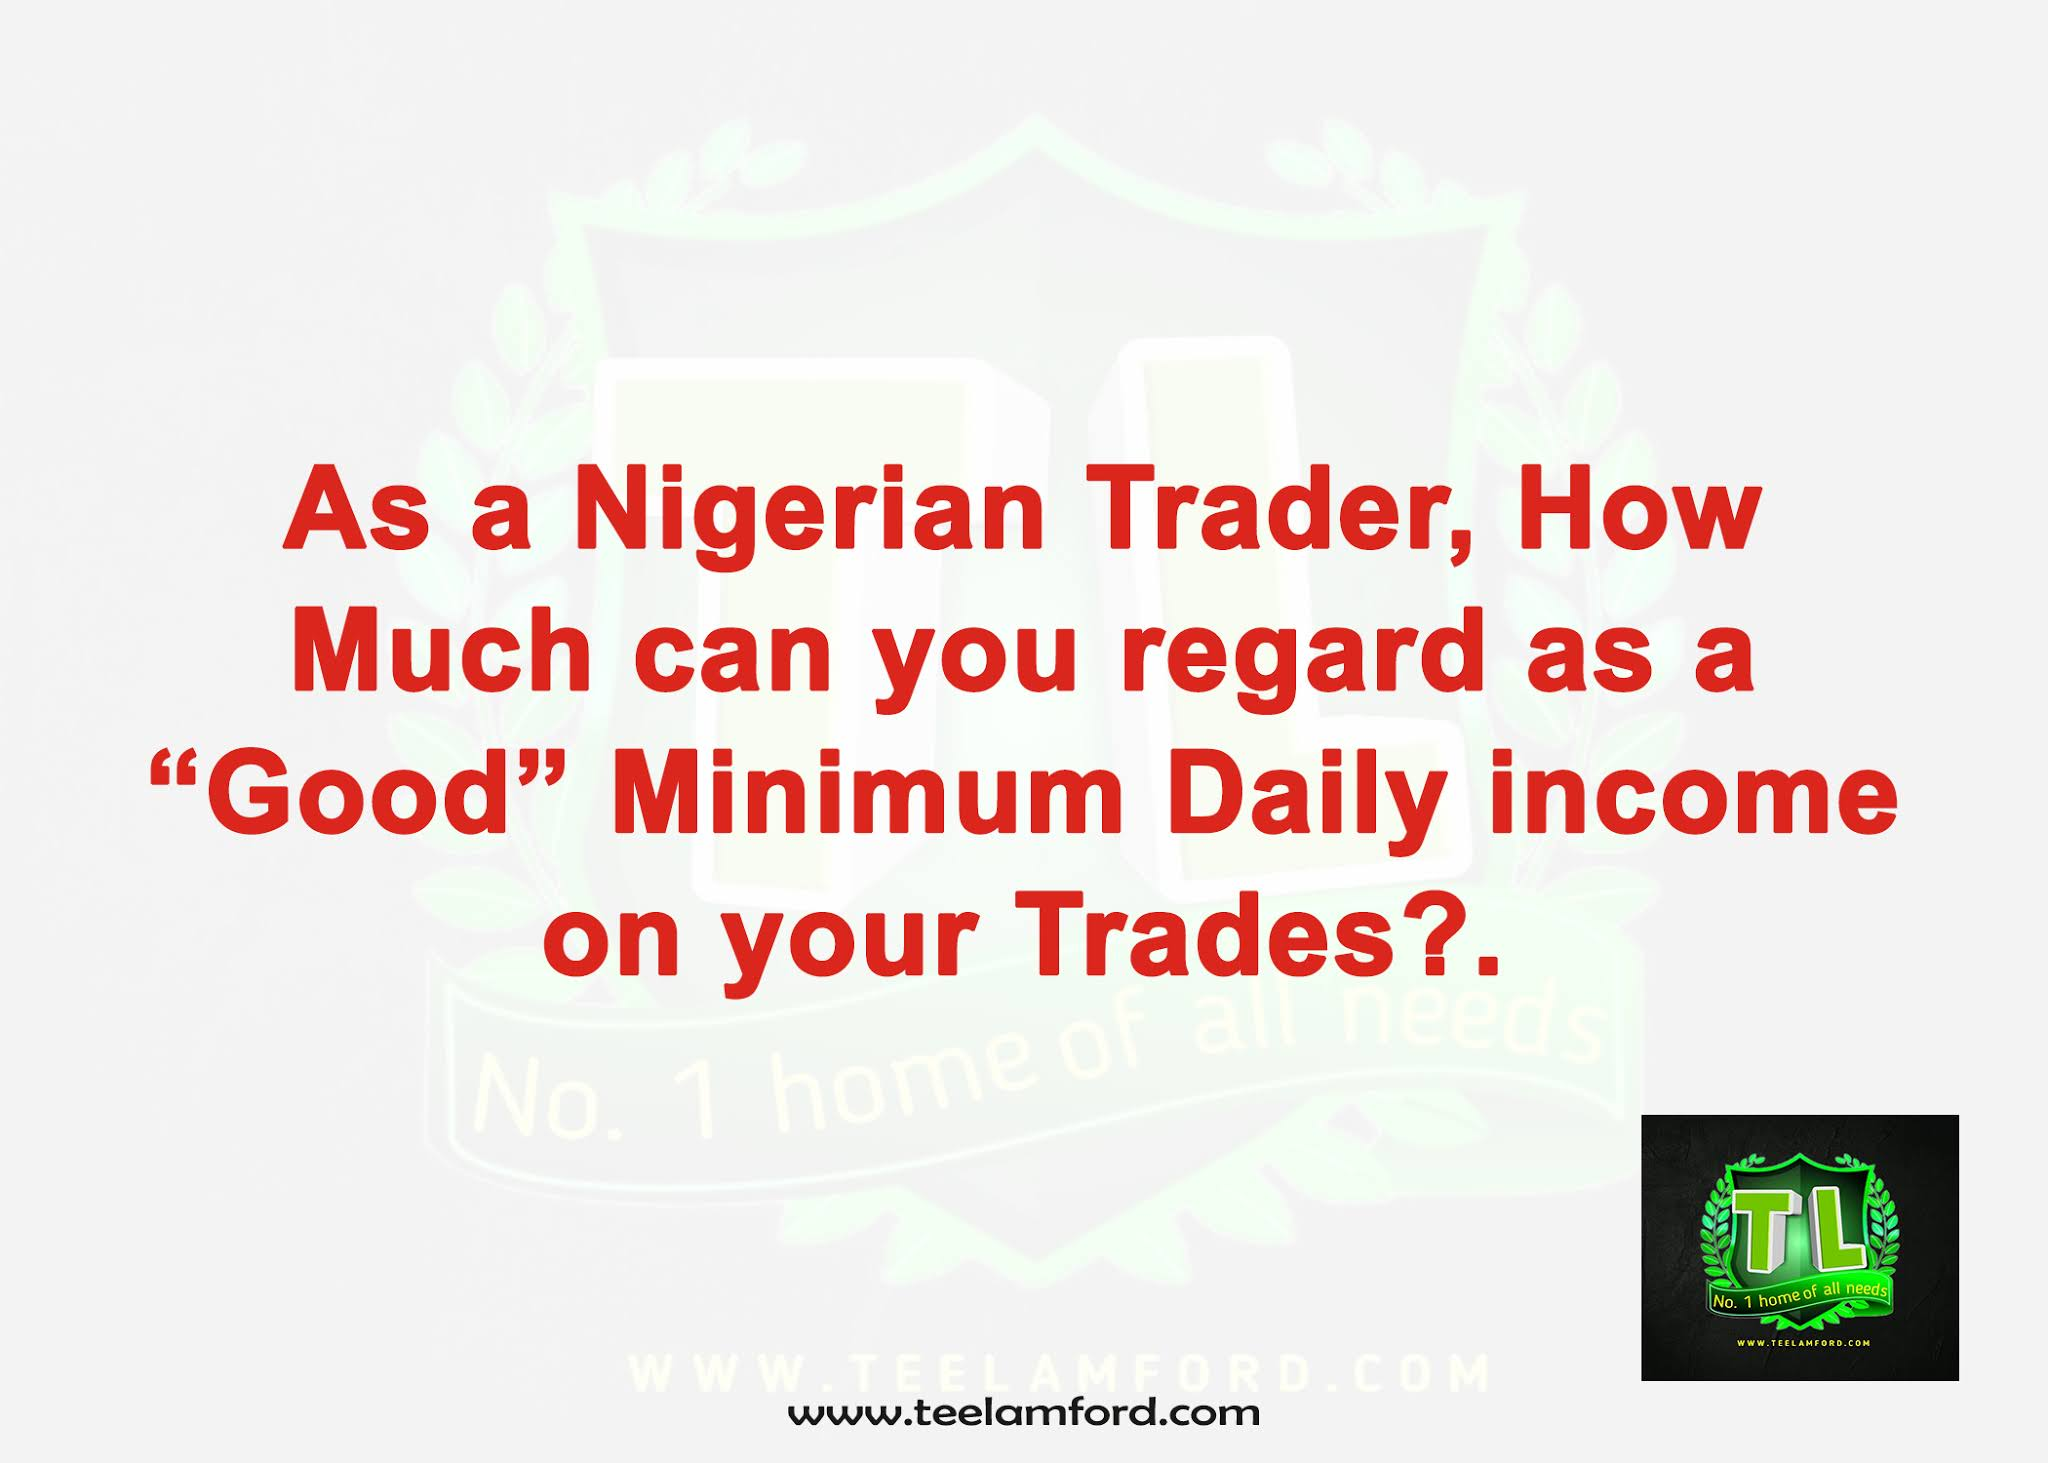 Nigerian-Trader-How-much-daily-income-Teelamford